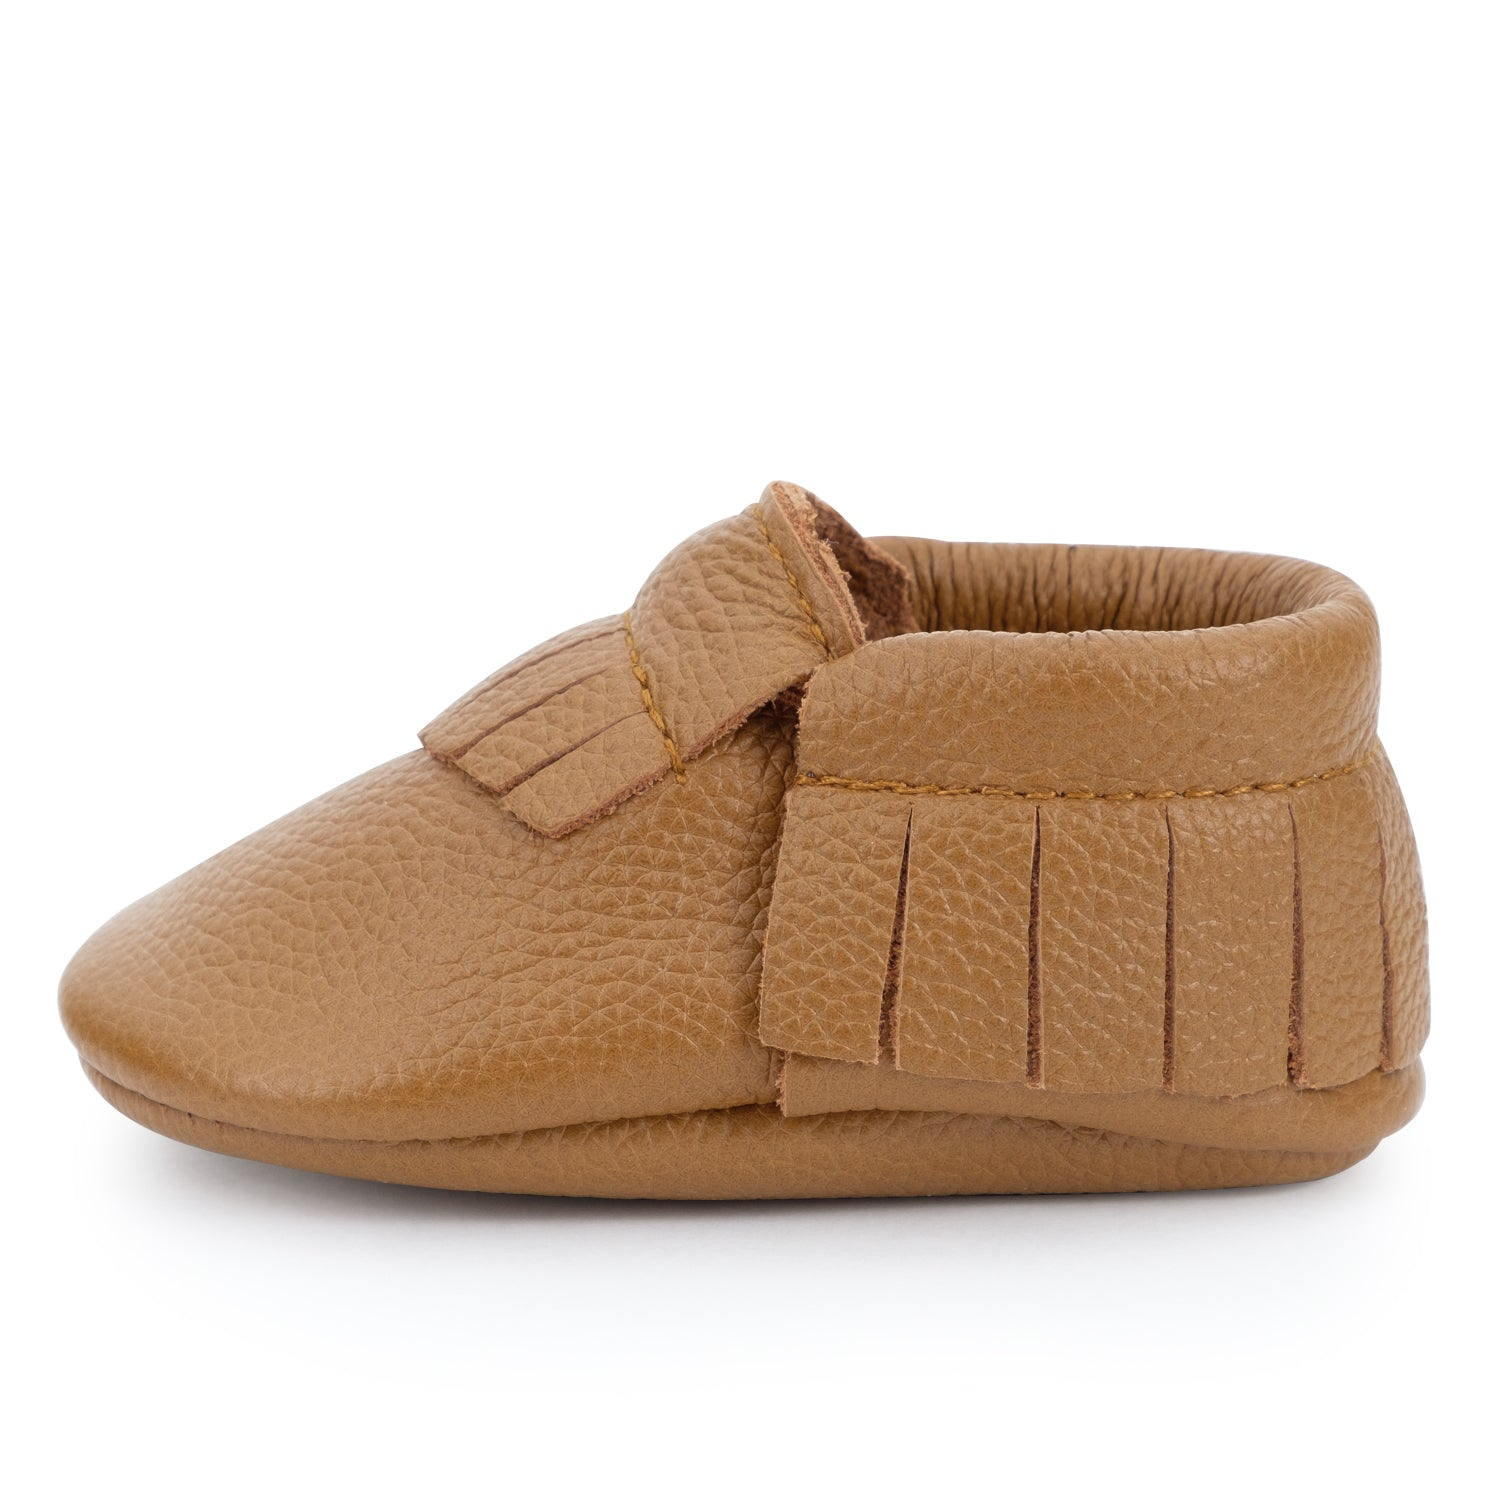 cabacb5d4d1ae BirdRock Baby Moccasins - Genuine Leather Moccs for Girls & Boys